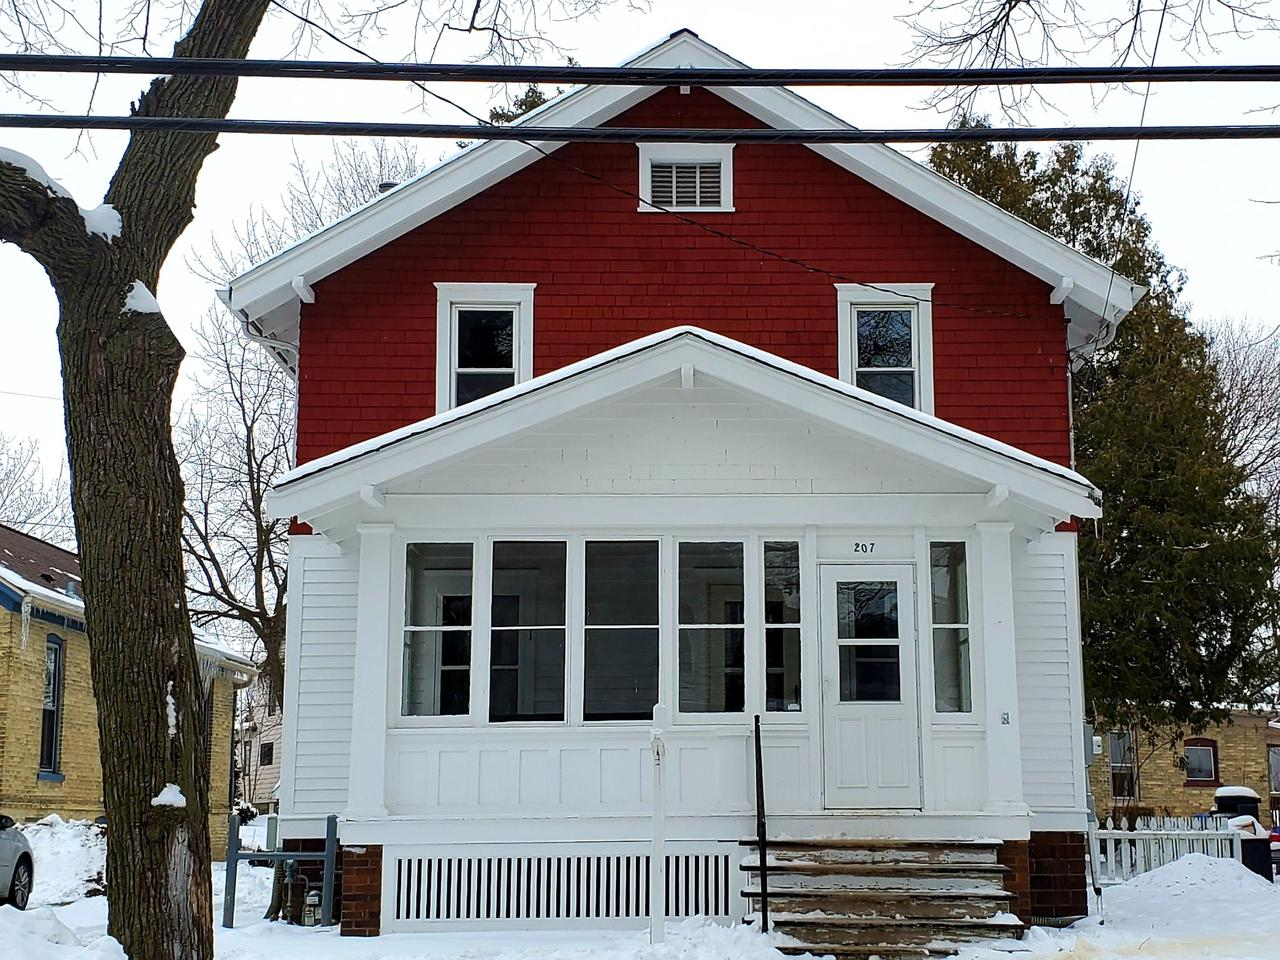 REMODELED AND AFFORABLE best describes this 3 bedroom, 1.5 bath home. The interior & exterior have been freshly painted. New flooring with luxury vinyl plank throughout the 1st floor. New electrical panel, outlets & lighting. Brand new kitchen with stainless steel appliance package, pantry, tile backsplash, soft close doors & butcher block counter tops! Both of the bathrooms have also been completely remodeled with tile tub surround & solid surface vanities. All this & still maintaining it's character with the original woodwork & doors! Last but not least there is an enclosed porch to enjoy & most of the windows in the home have been updated.